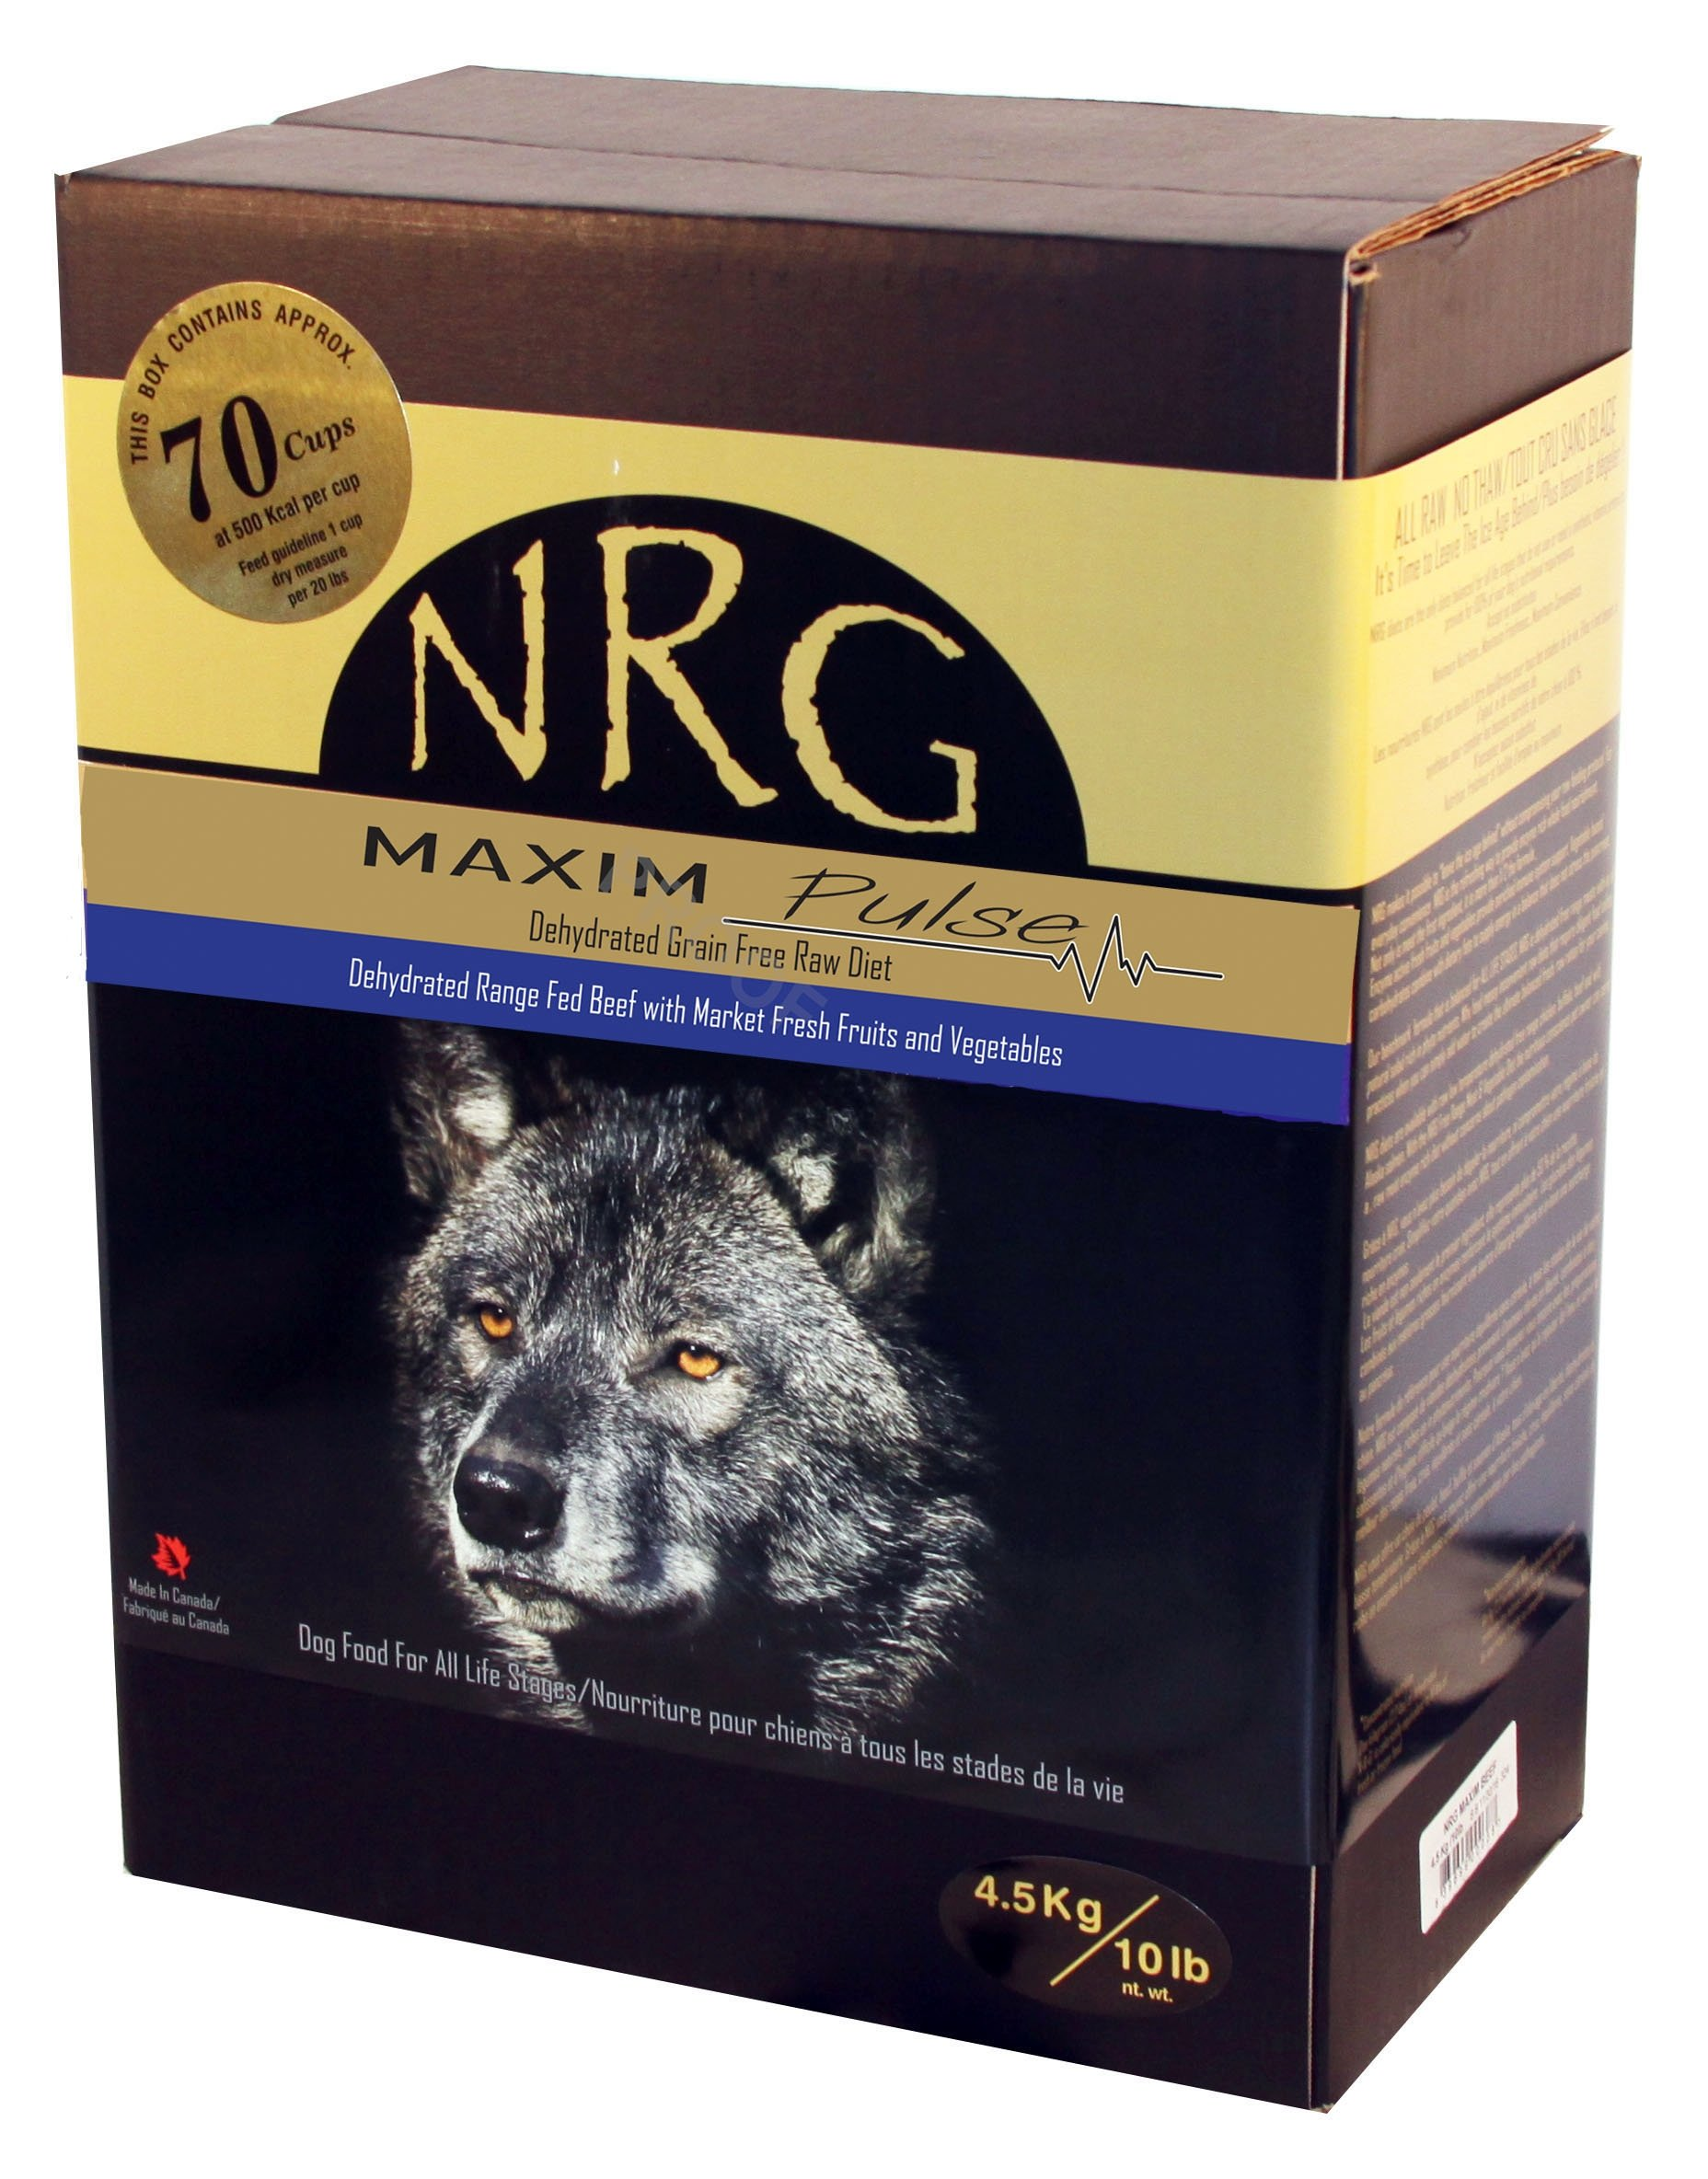 NRG Pulse Grain Free Dehydrated Dog Food Made from Free Range Canadian Beef & Veggies 10 Pound Box, 1 Piece